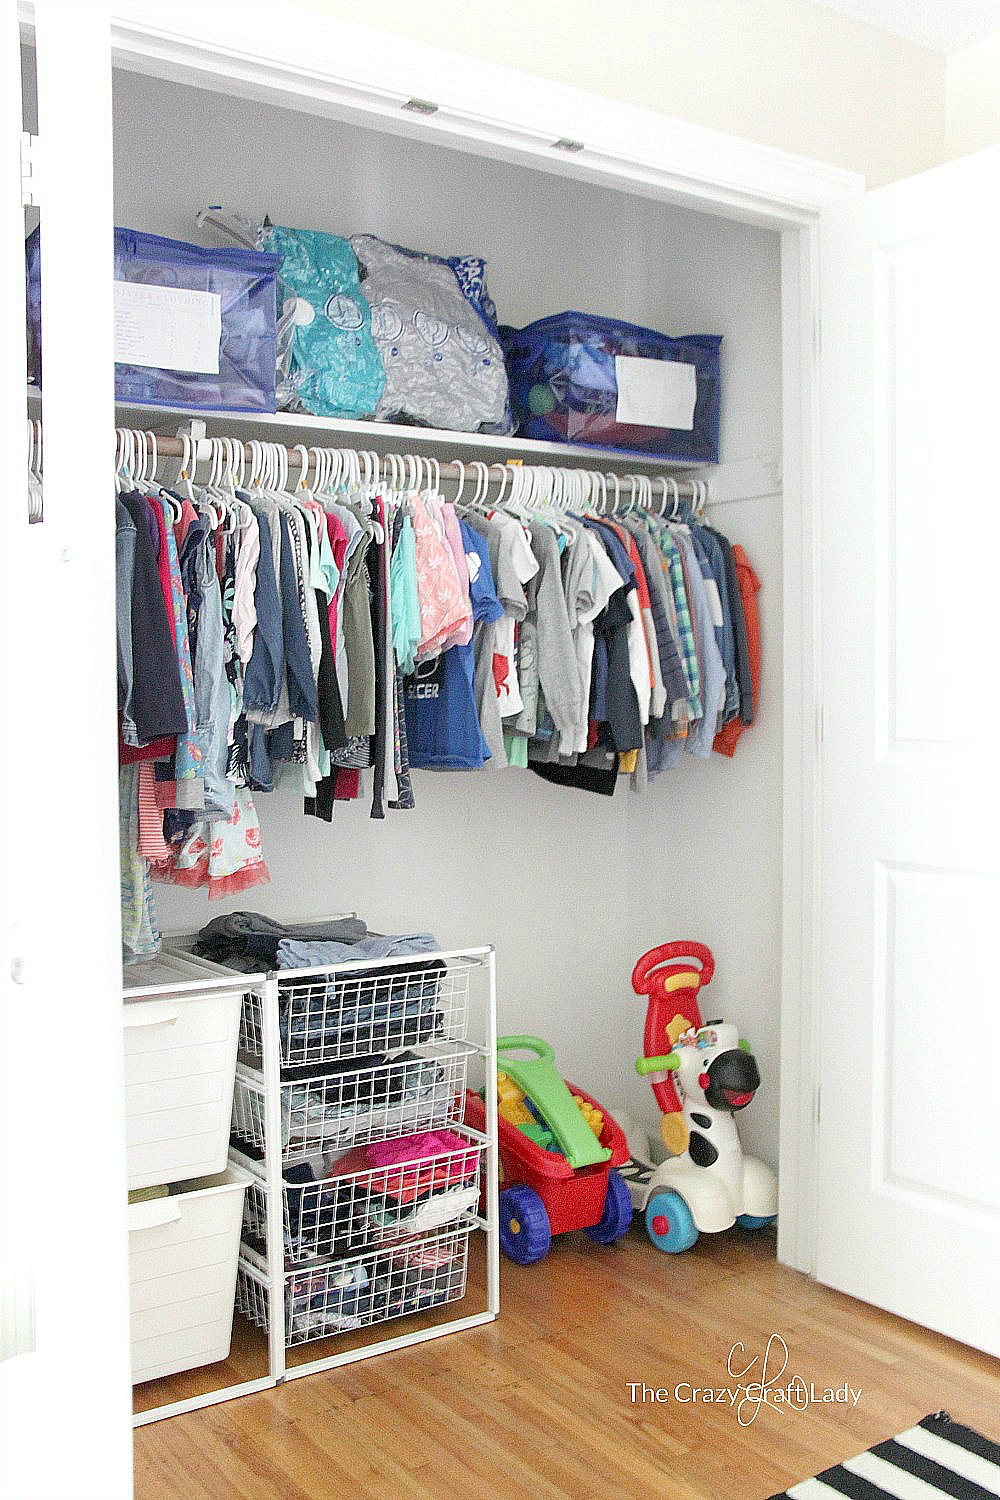 Sort, store, and label your children's winter clothing and gear using Space Bags and Totes for a perfectly organized closet. Keep all of that winter gear in one place, and know what sizes you have or will need for next season.